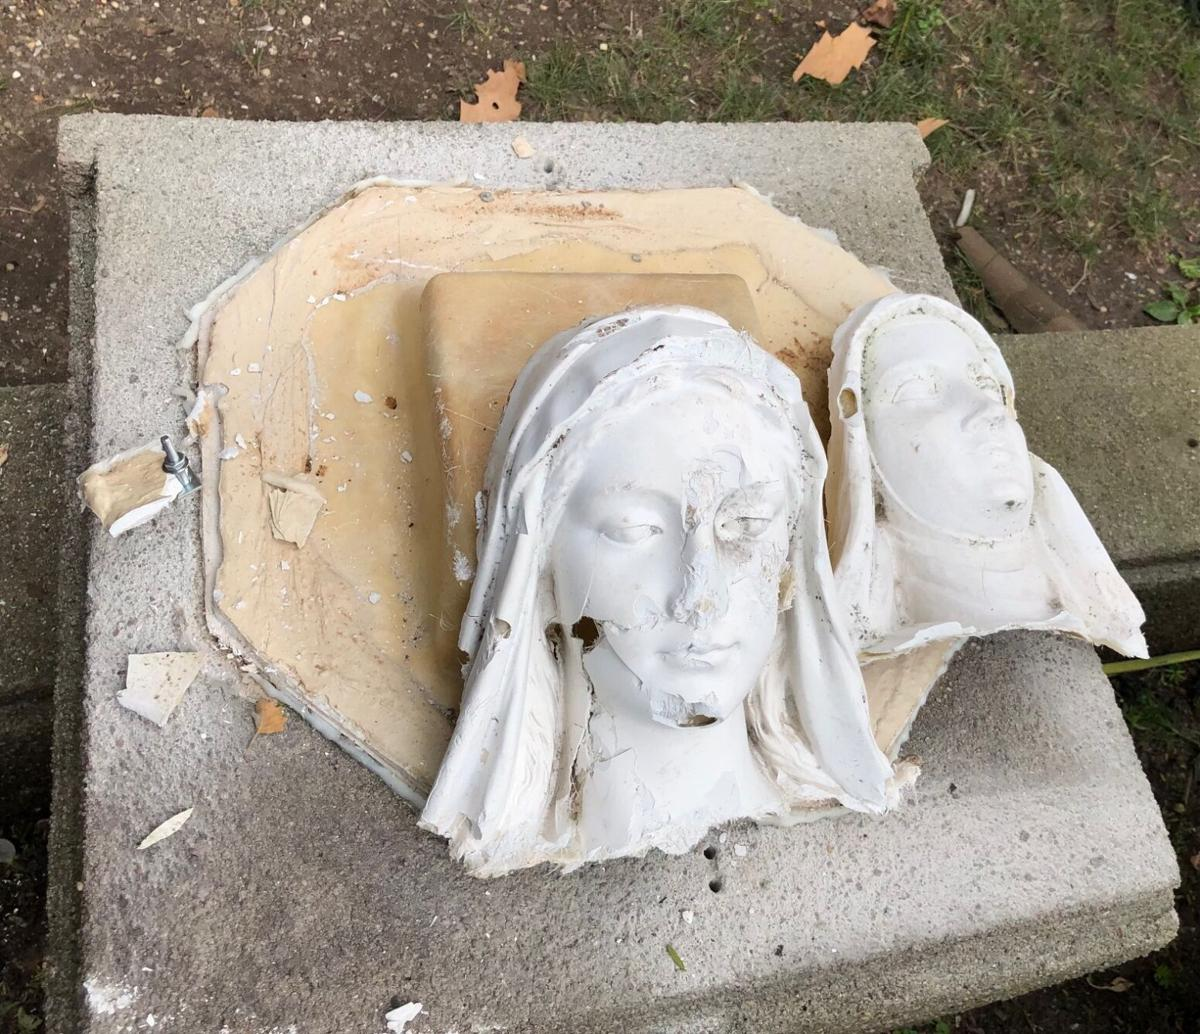 With video: Vandal destroys Forest Hills church statues